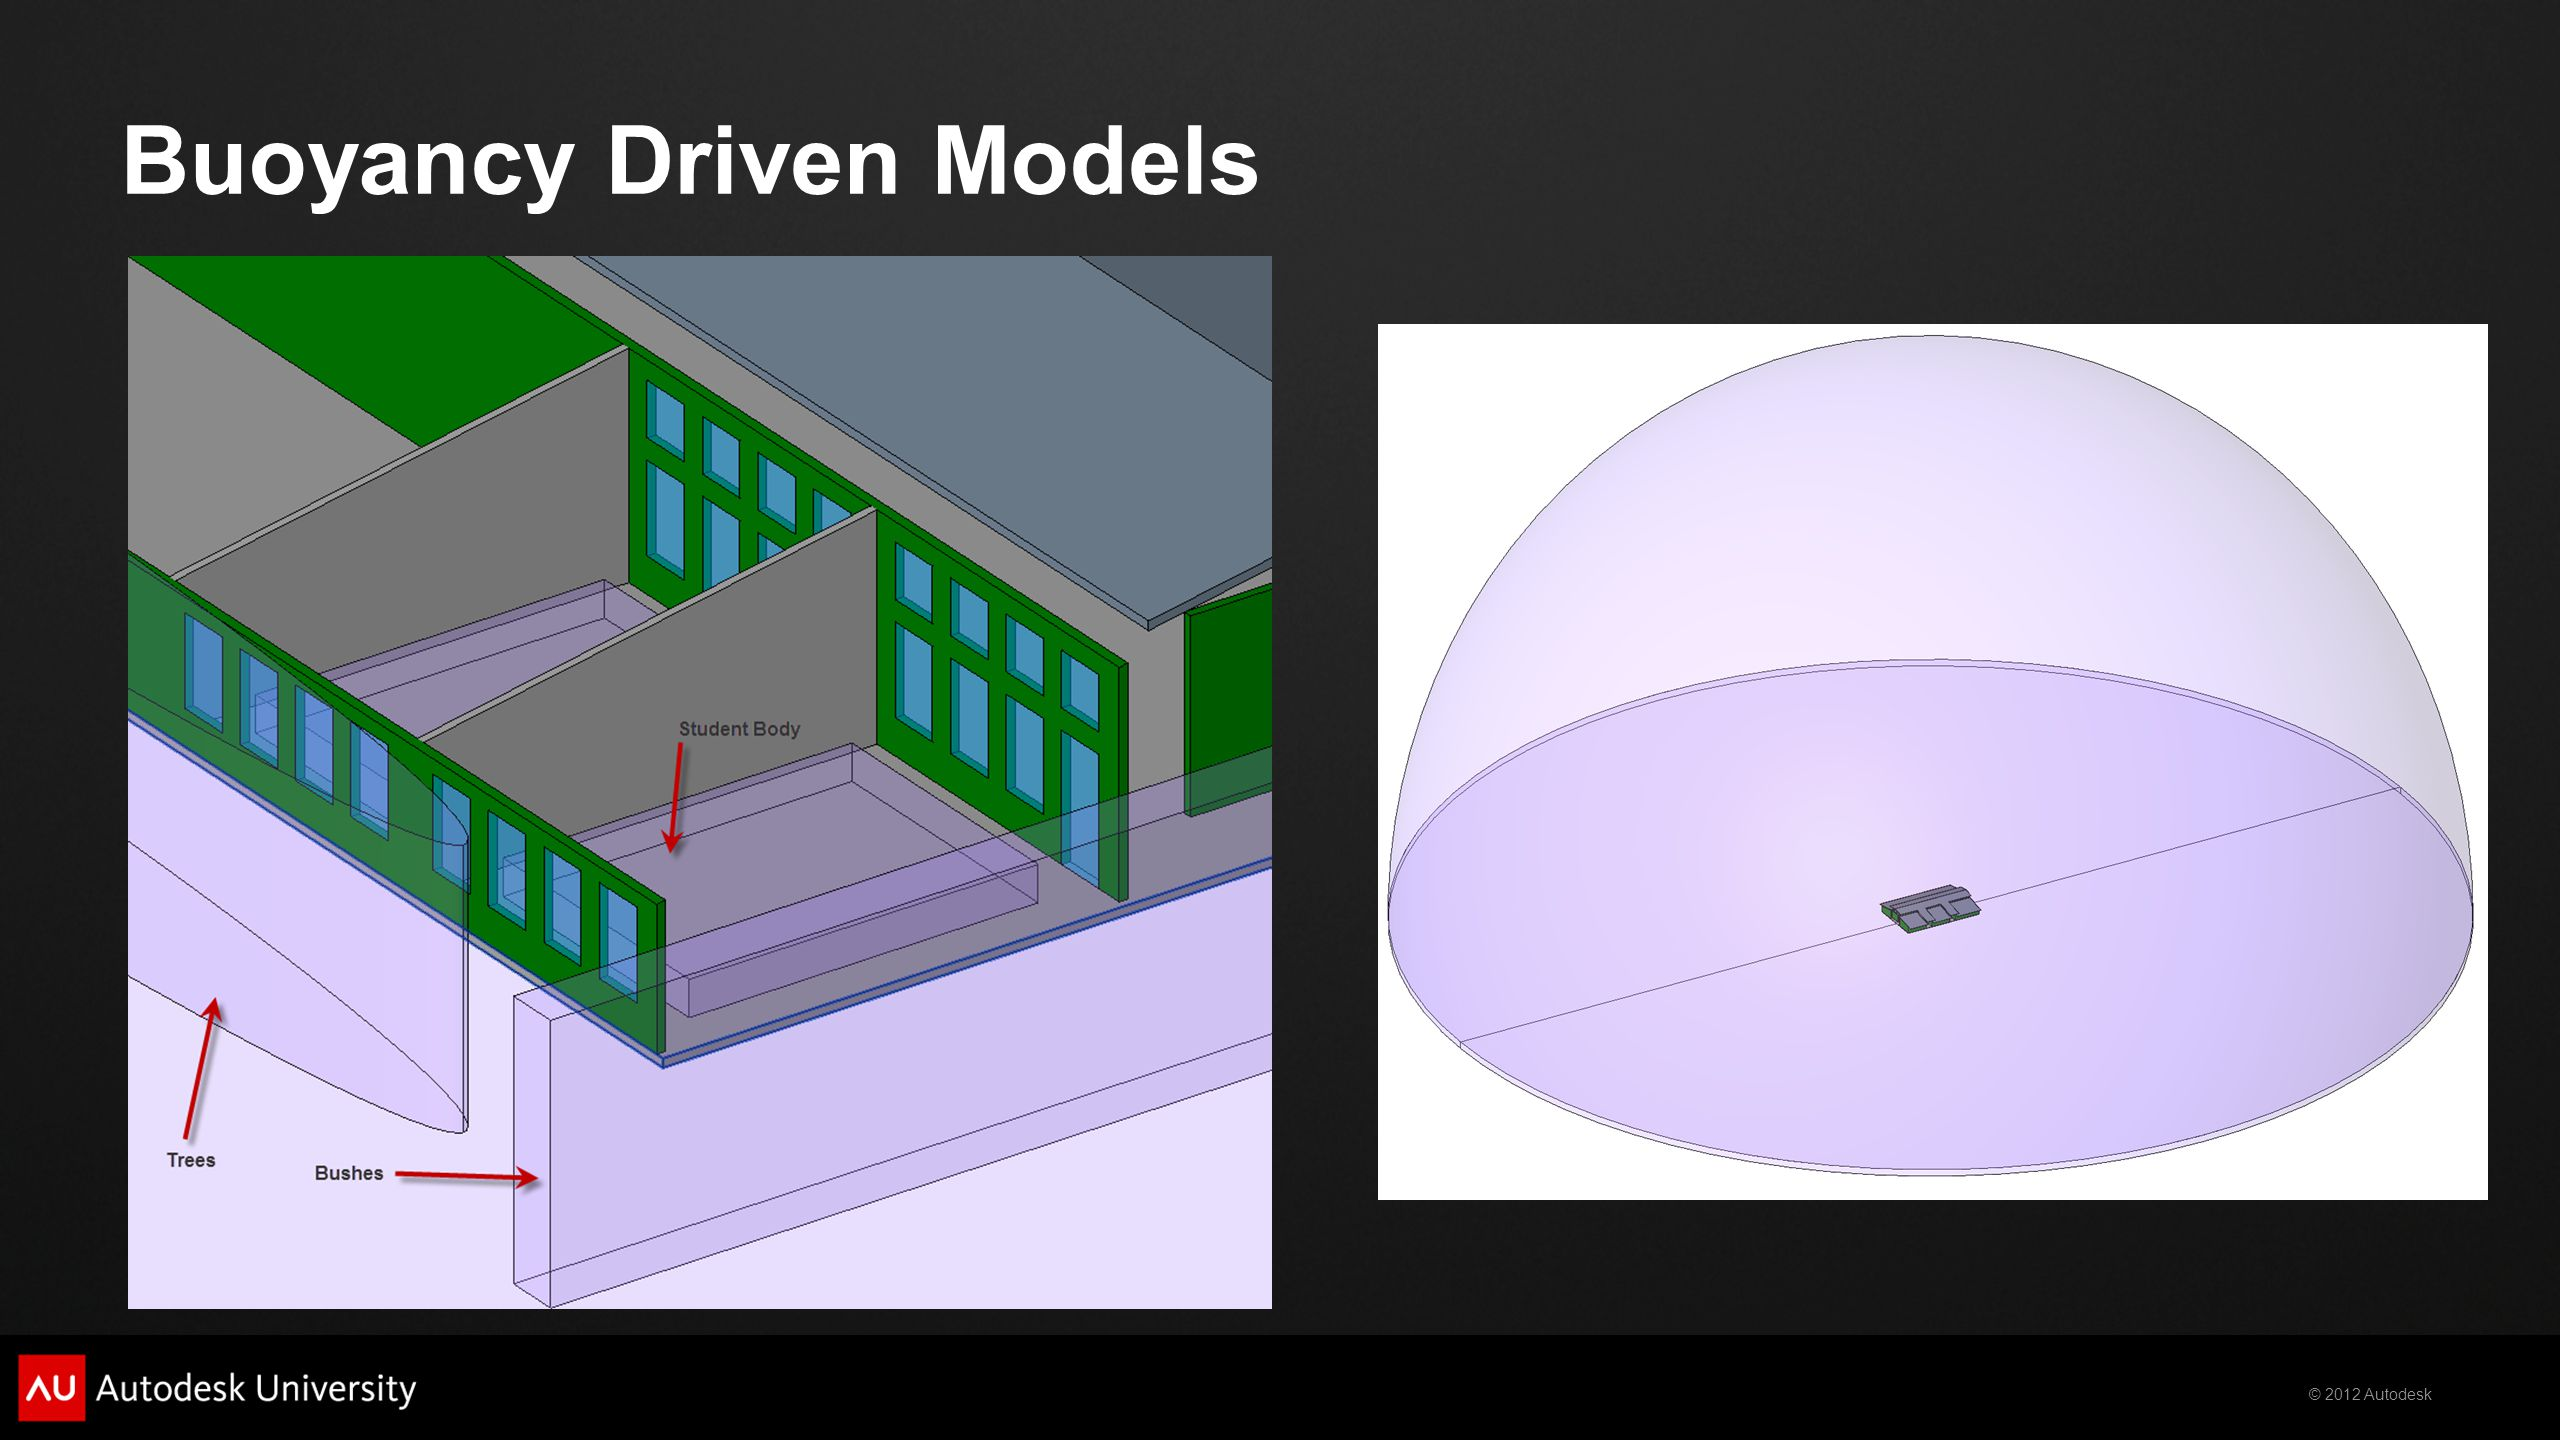 Buoyancy Driven Models